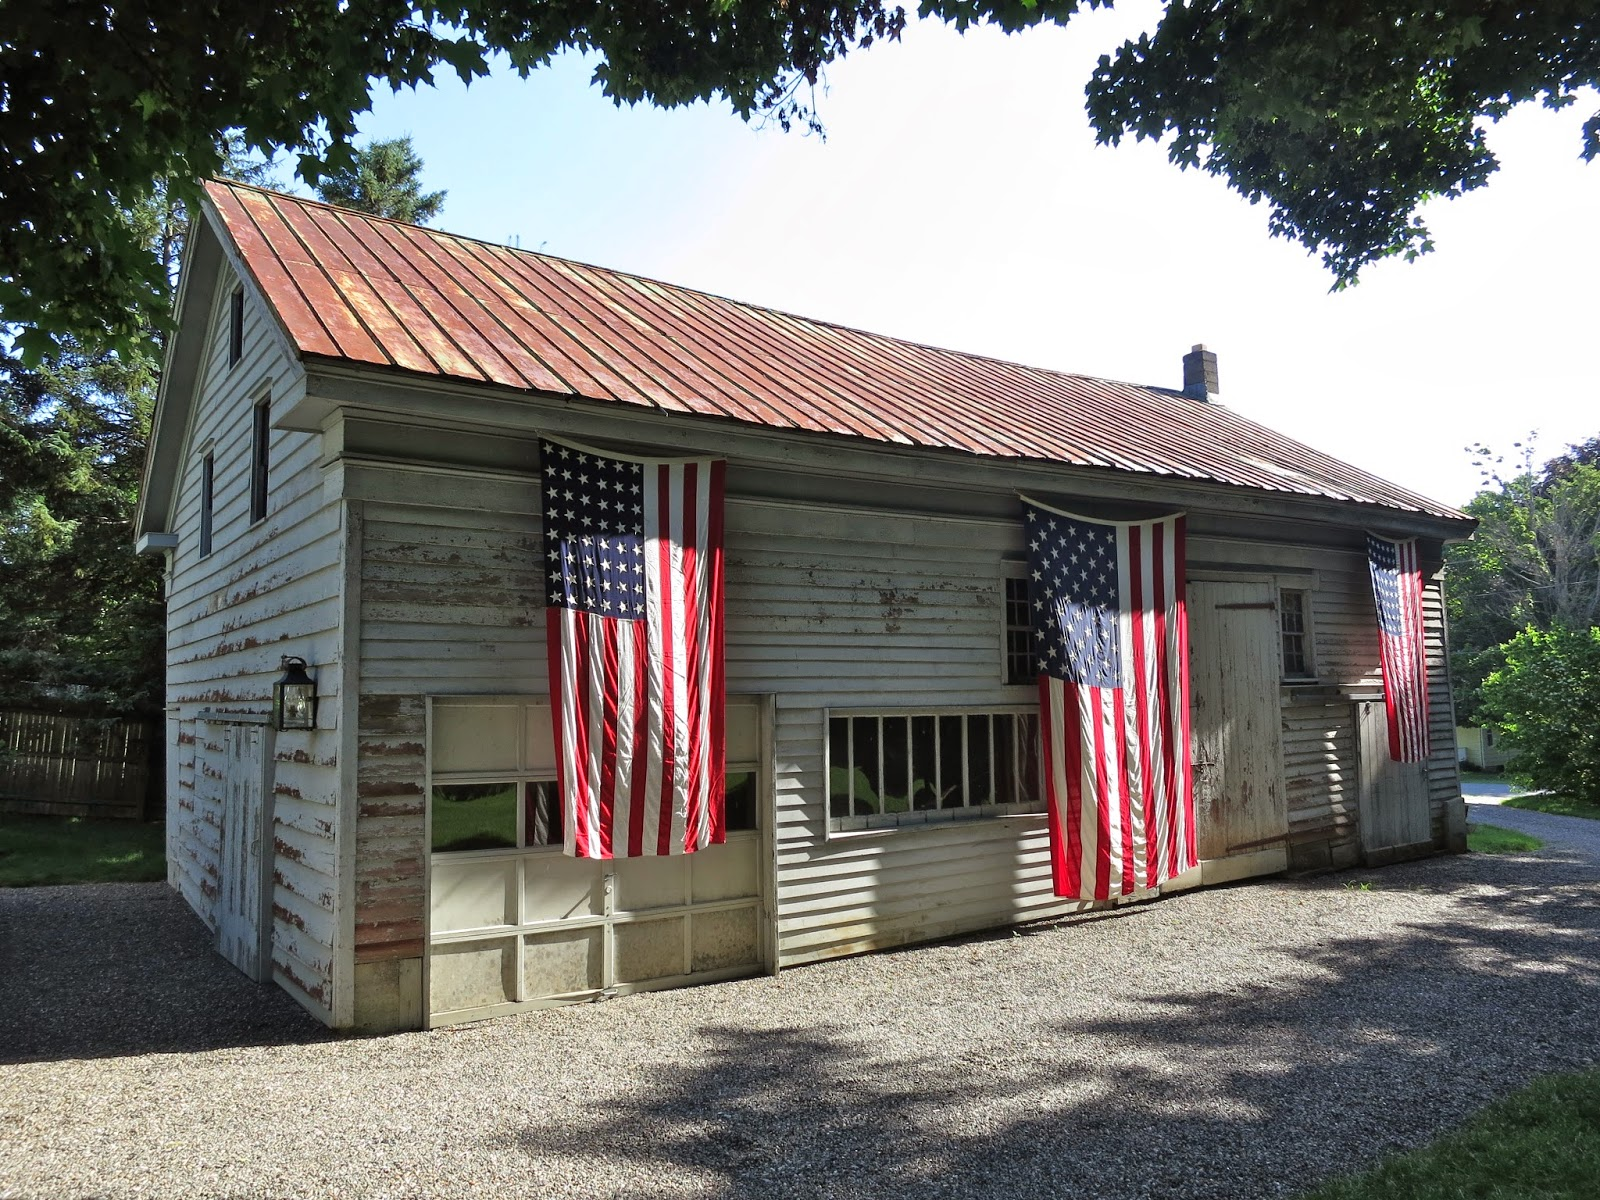 Reggie Darling: The Old Gray Barn Is Getting a Facelift